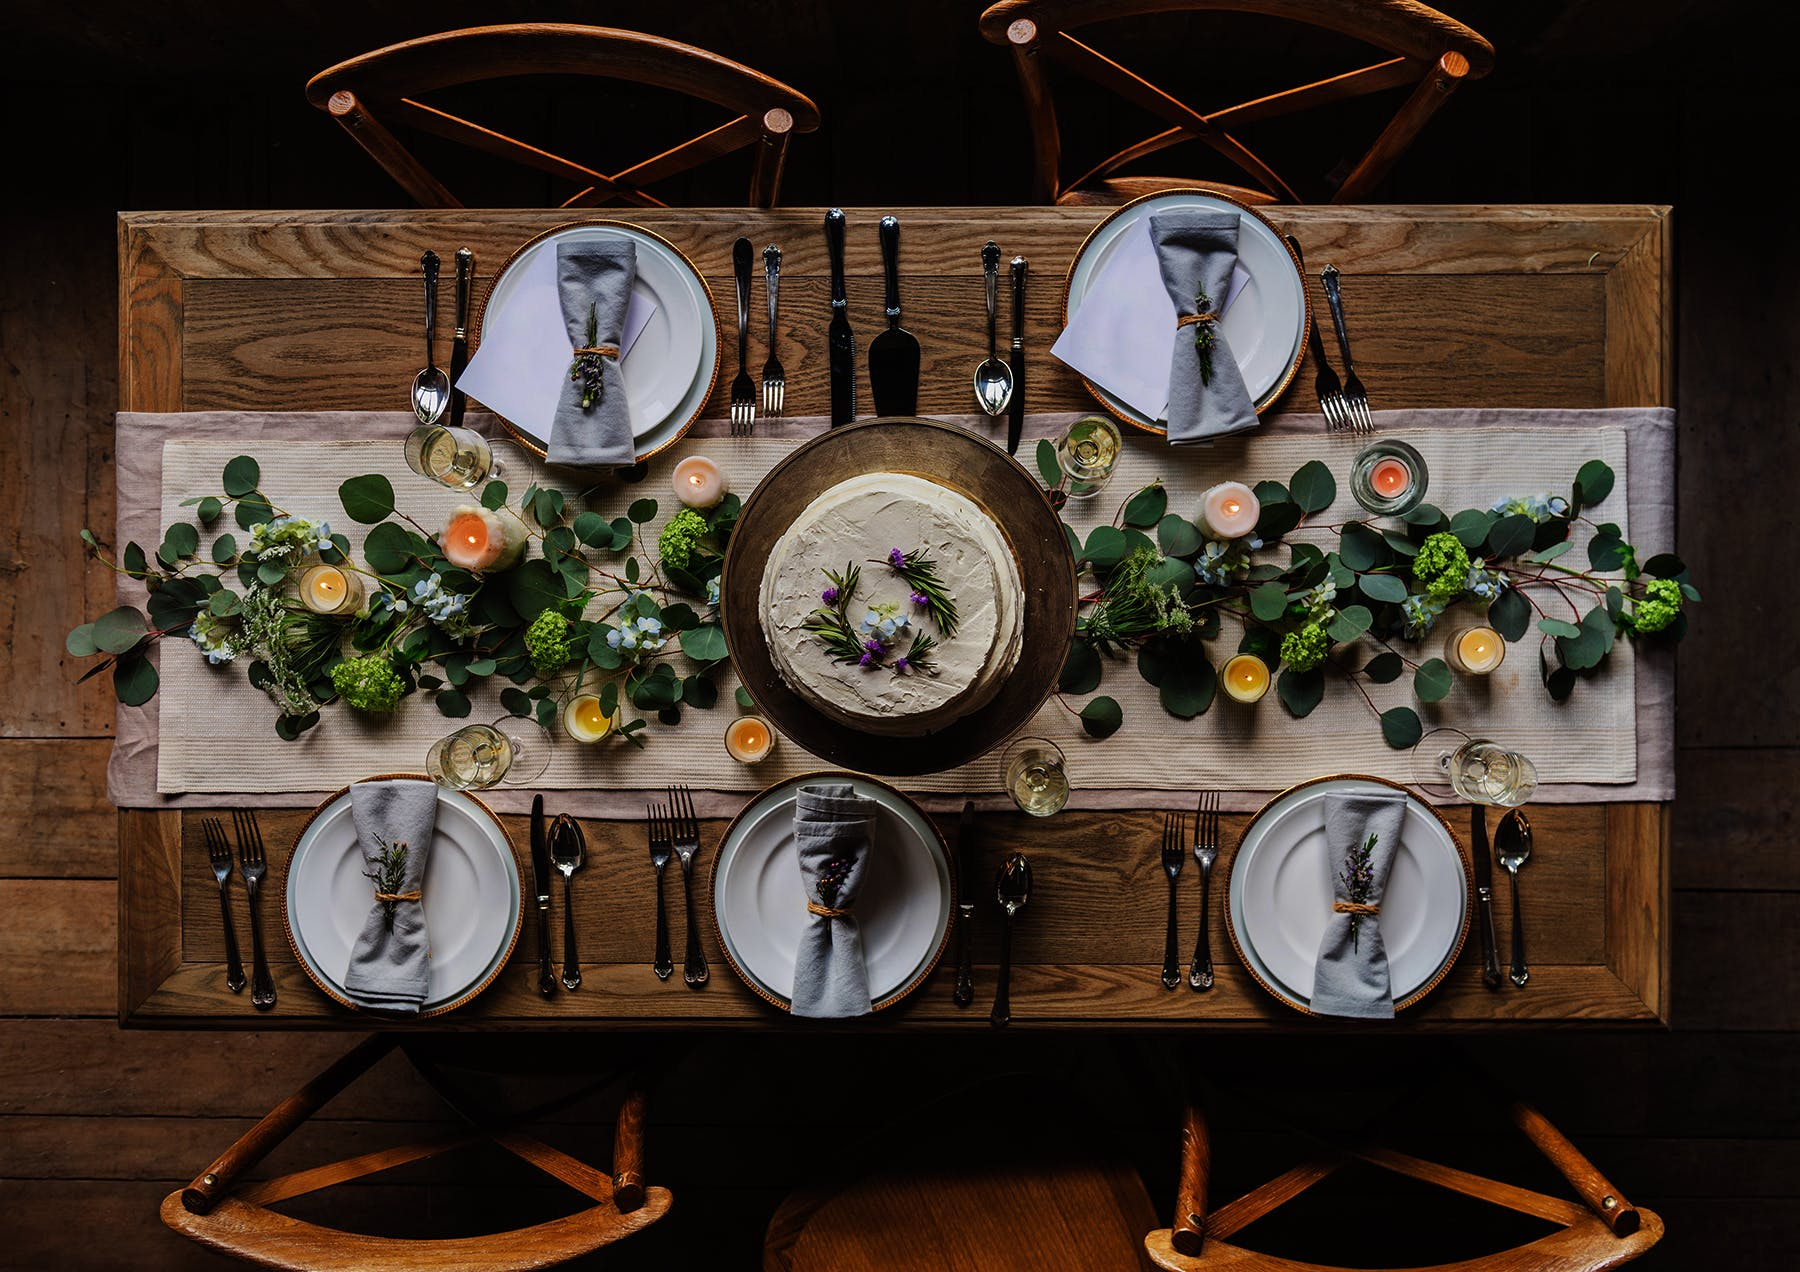 photo of dining table with plates and food